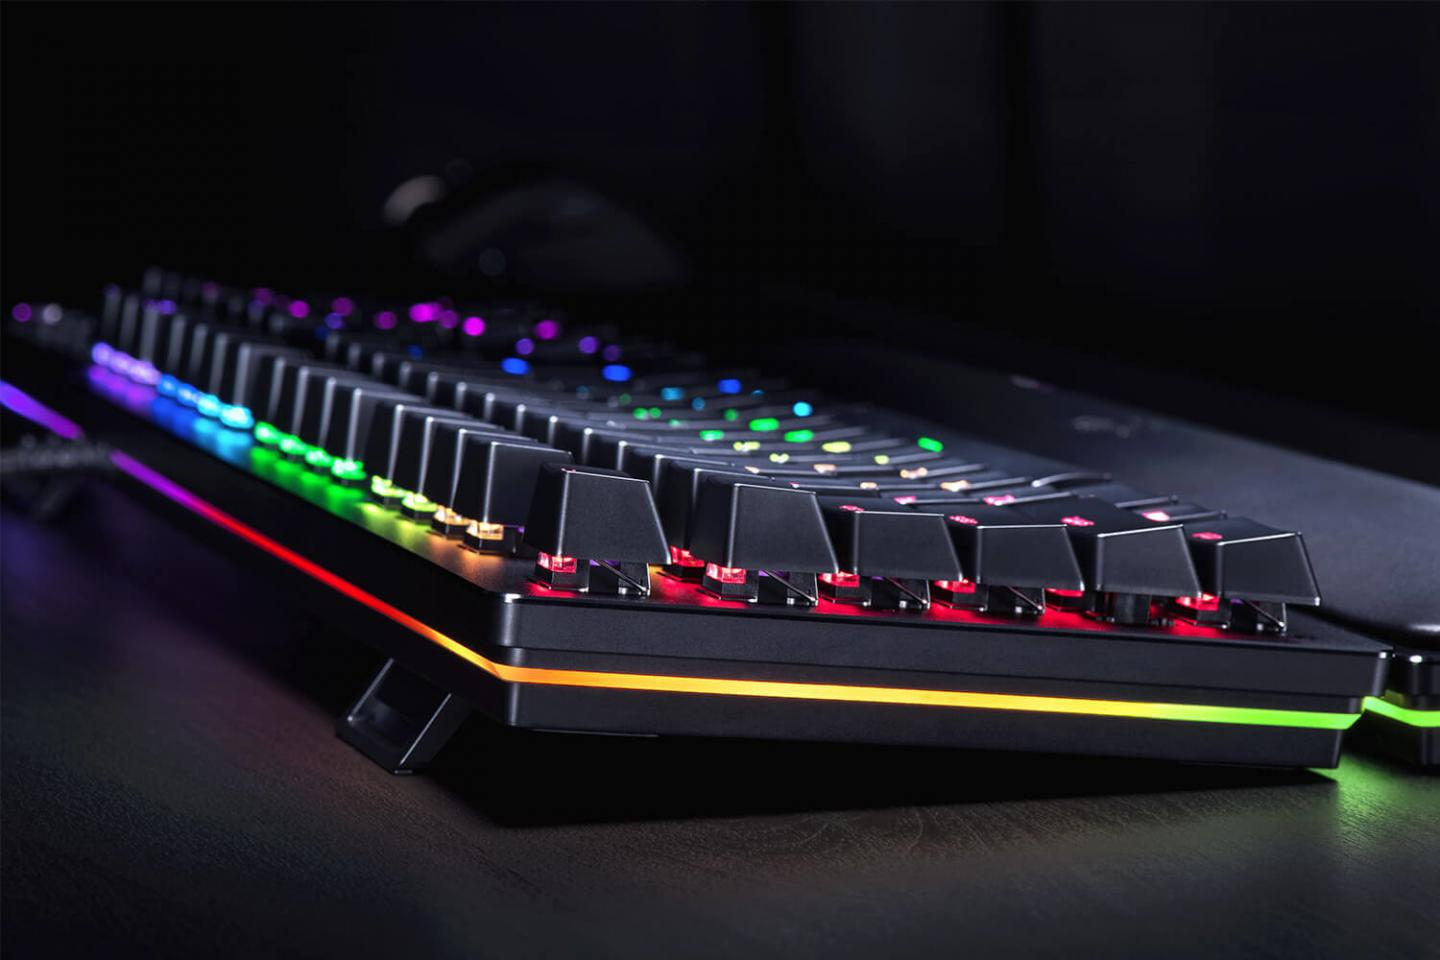 Razer Huntsman keyboard delivers gaming performance with new switch